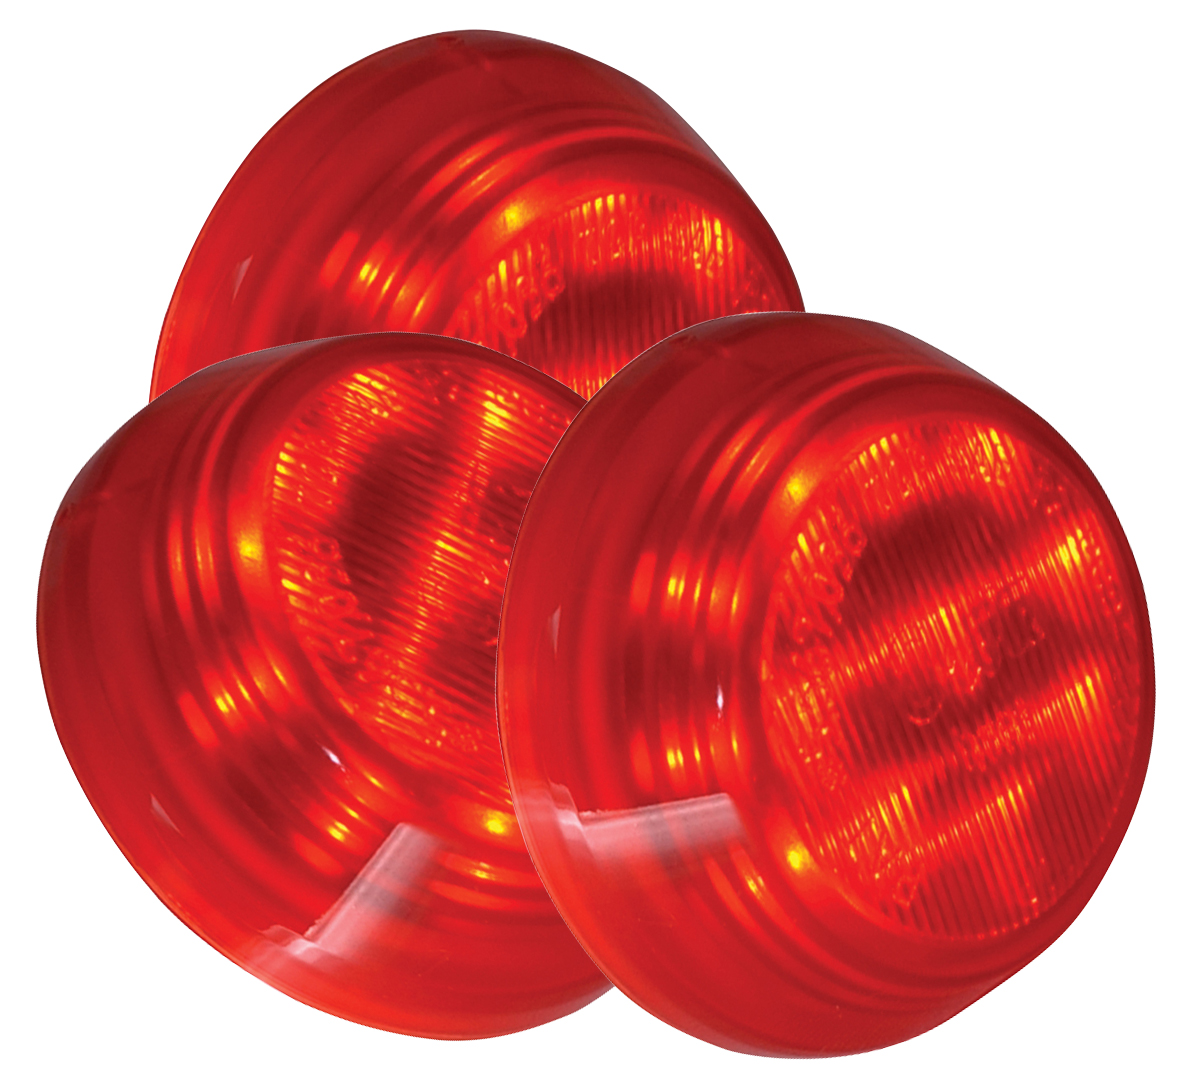 Grote Industries - G1092-3 – Hi Count® 2 1/2″ 9-Diode LED Clearance Marker Light, Red, Bulk Pack